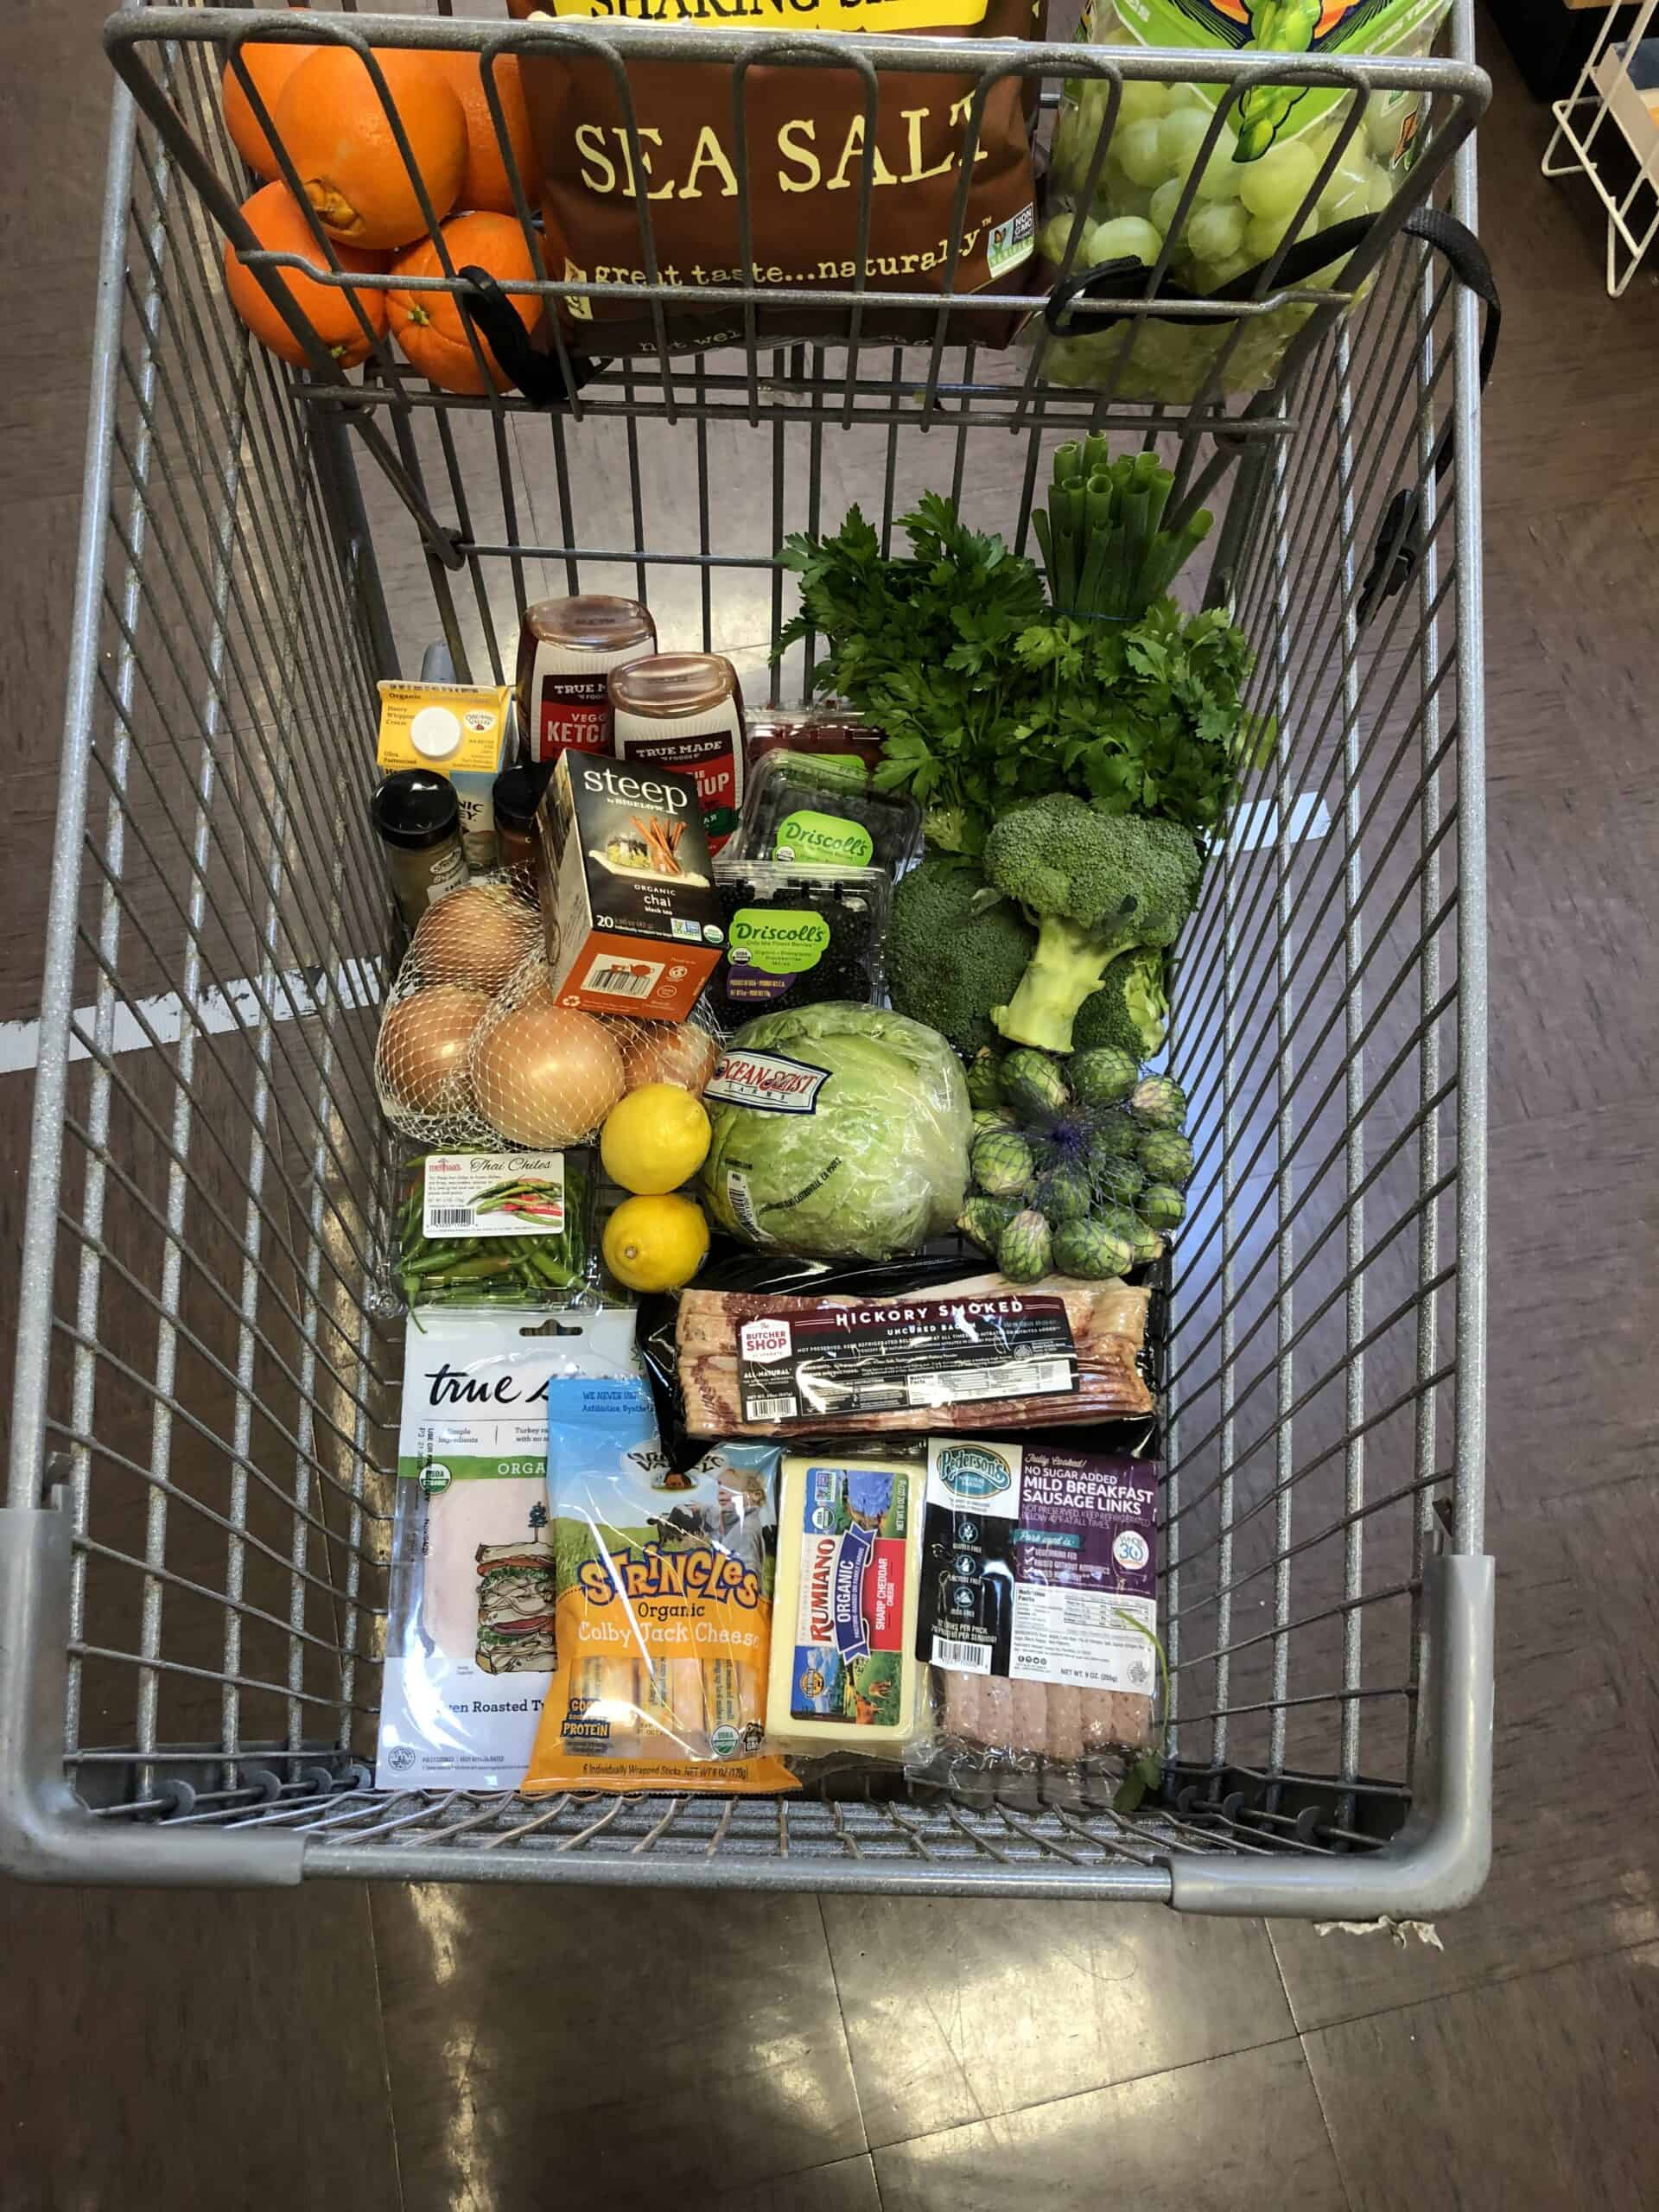 keto grocery haul at sprouts in a grocery cart